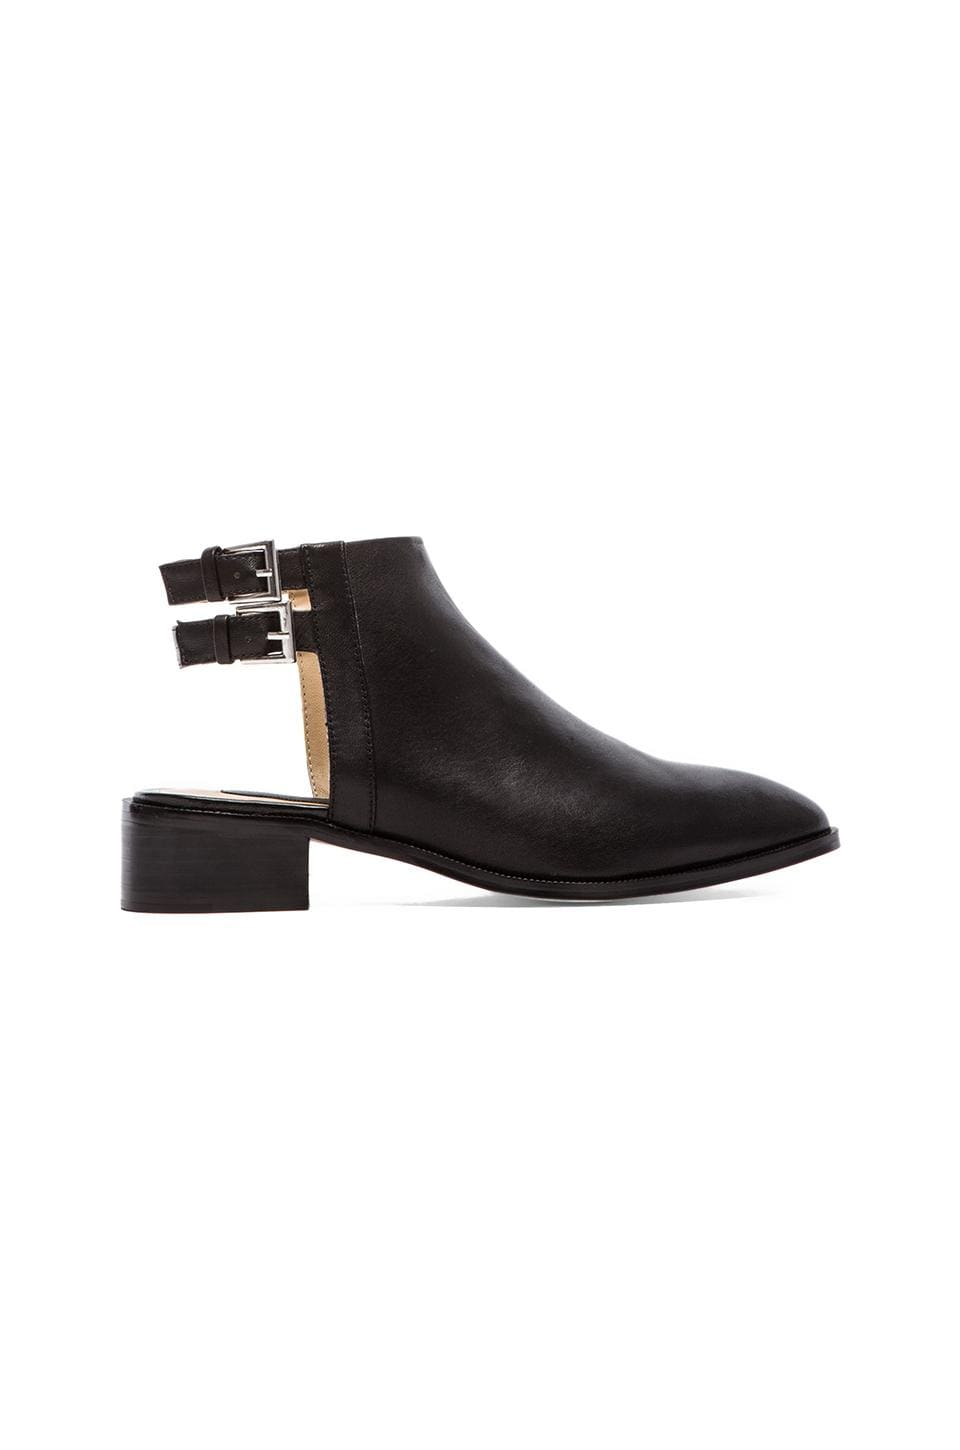 Steven Nadiya Bootie in Black